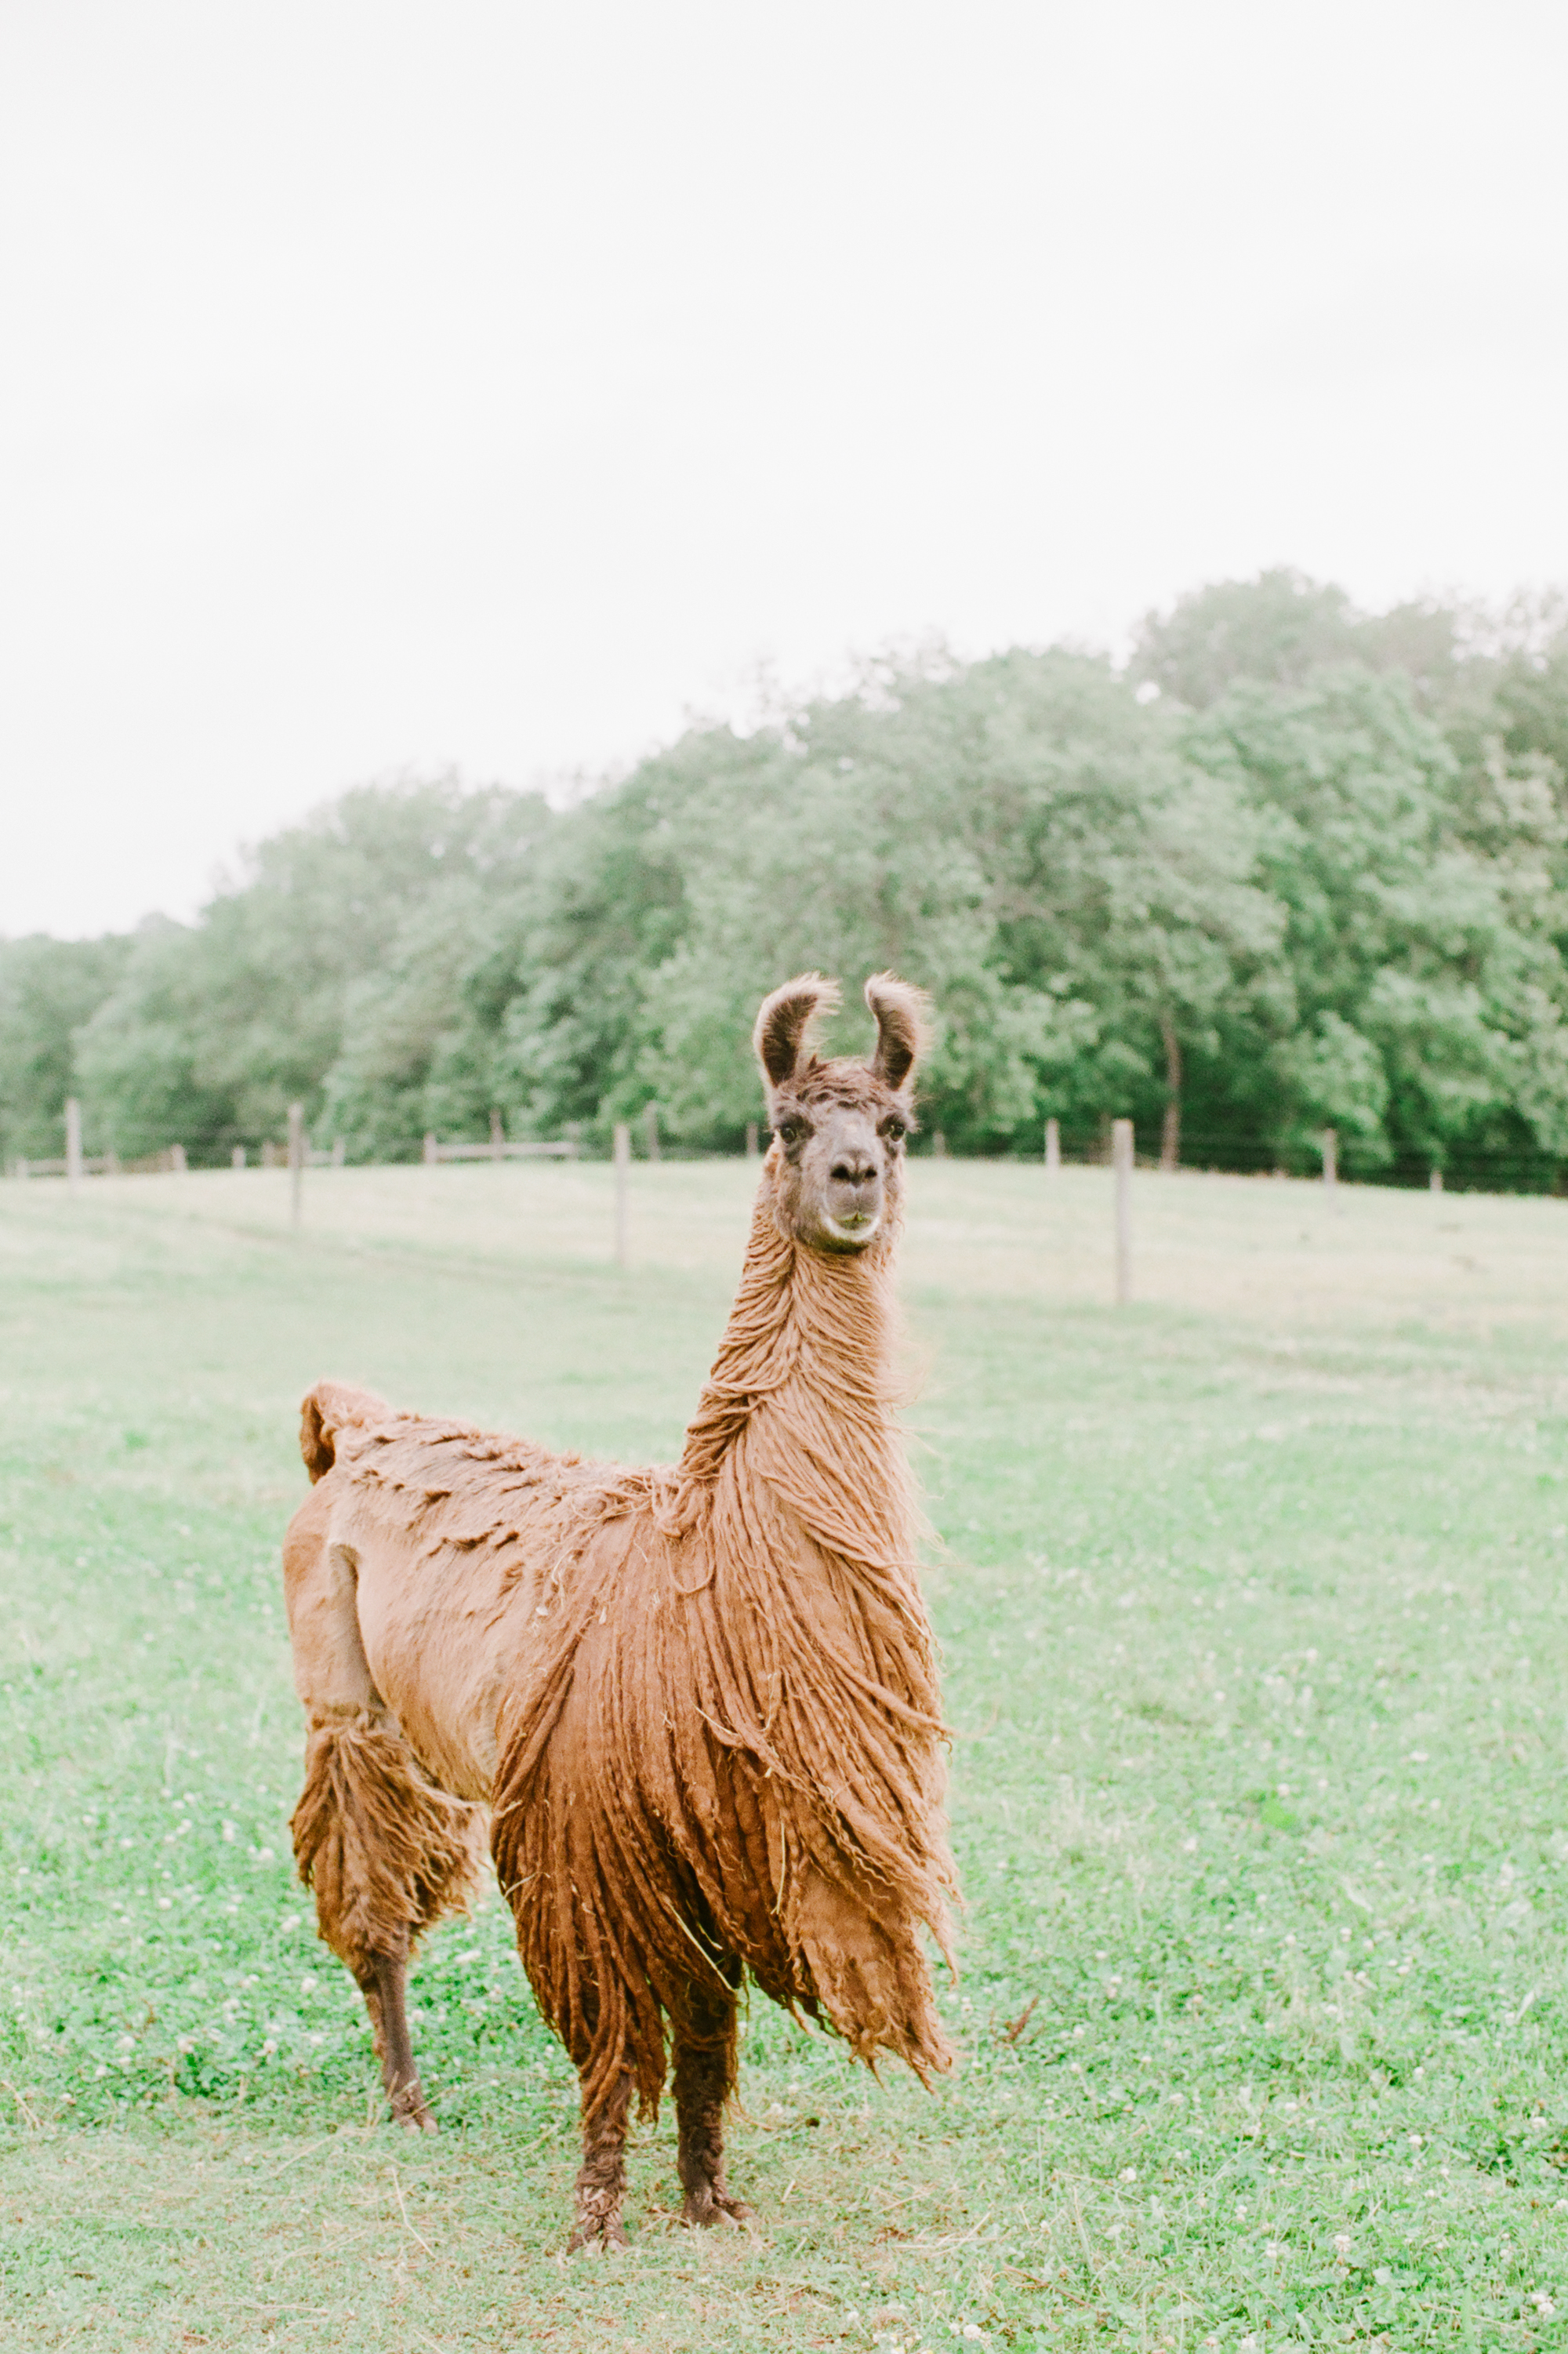 nj_alpaca-farm_wedding_inspiration-98.jpg